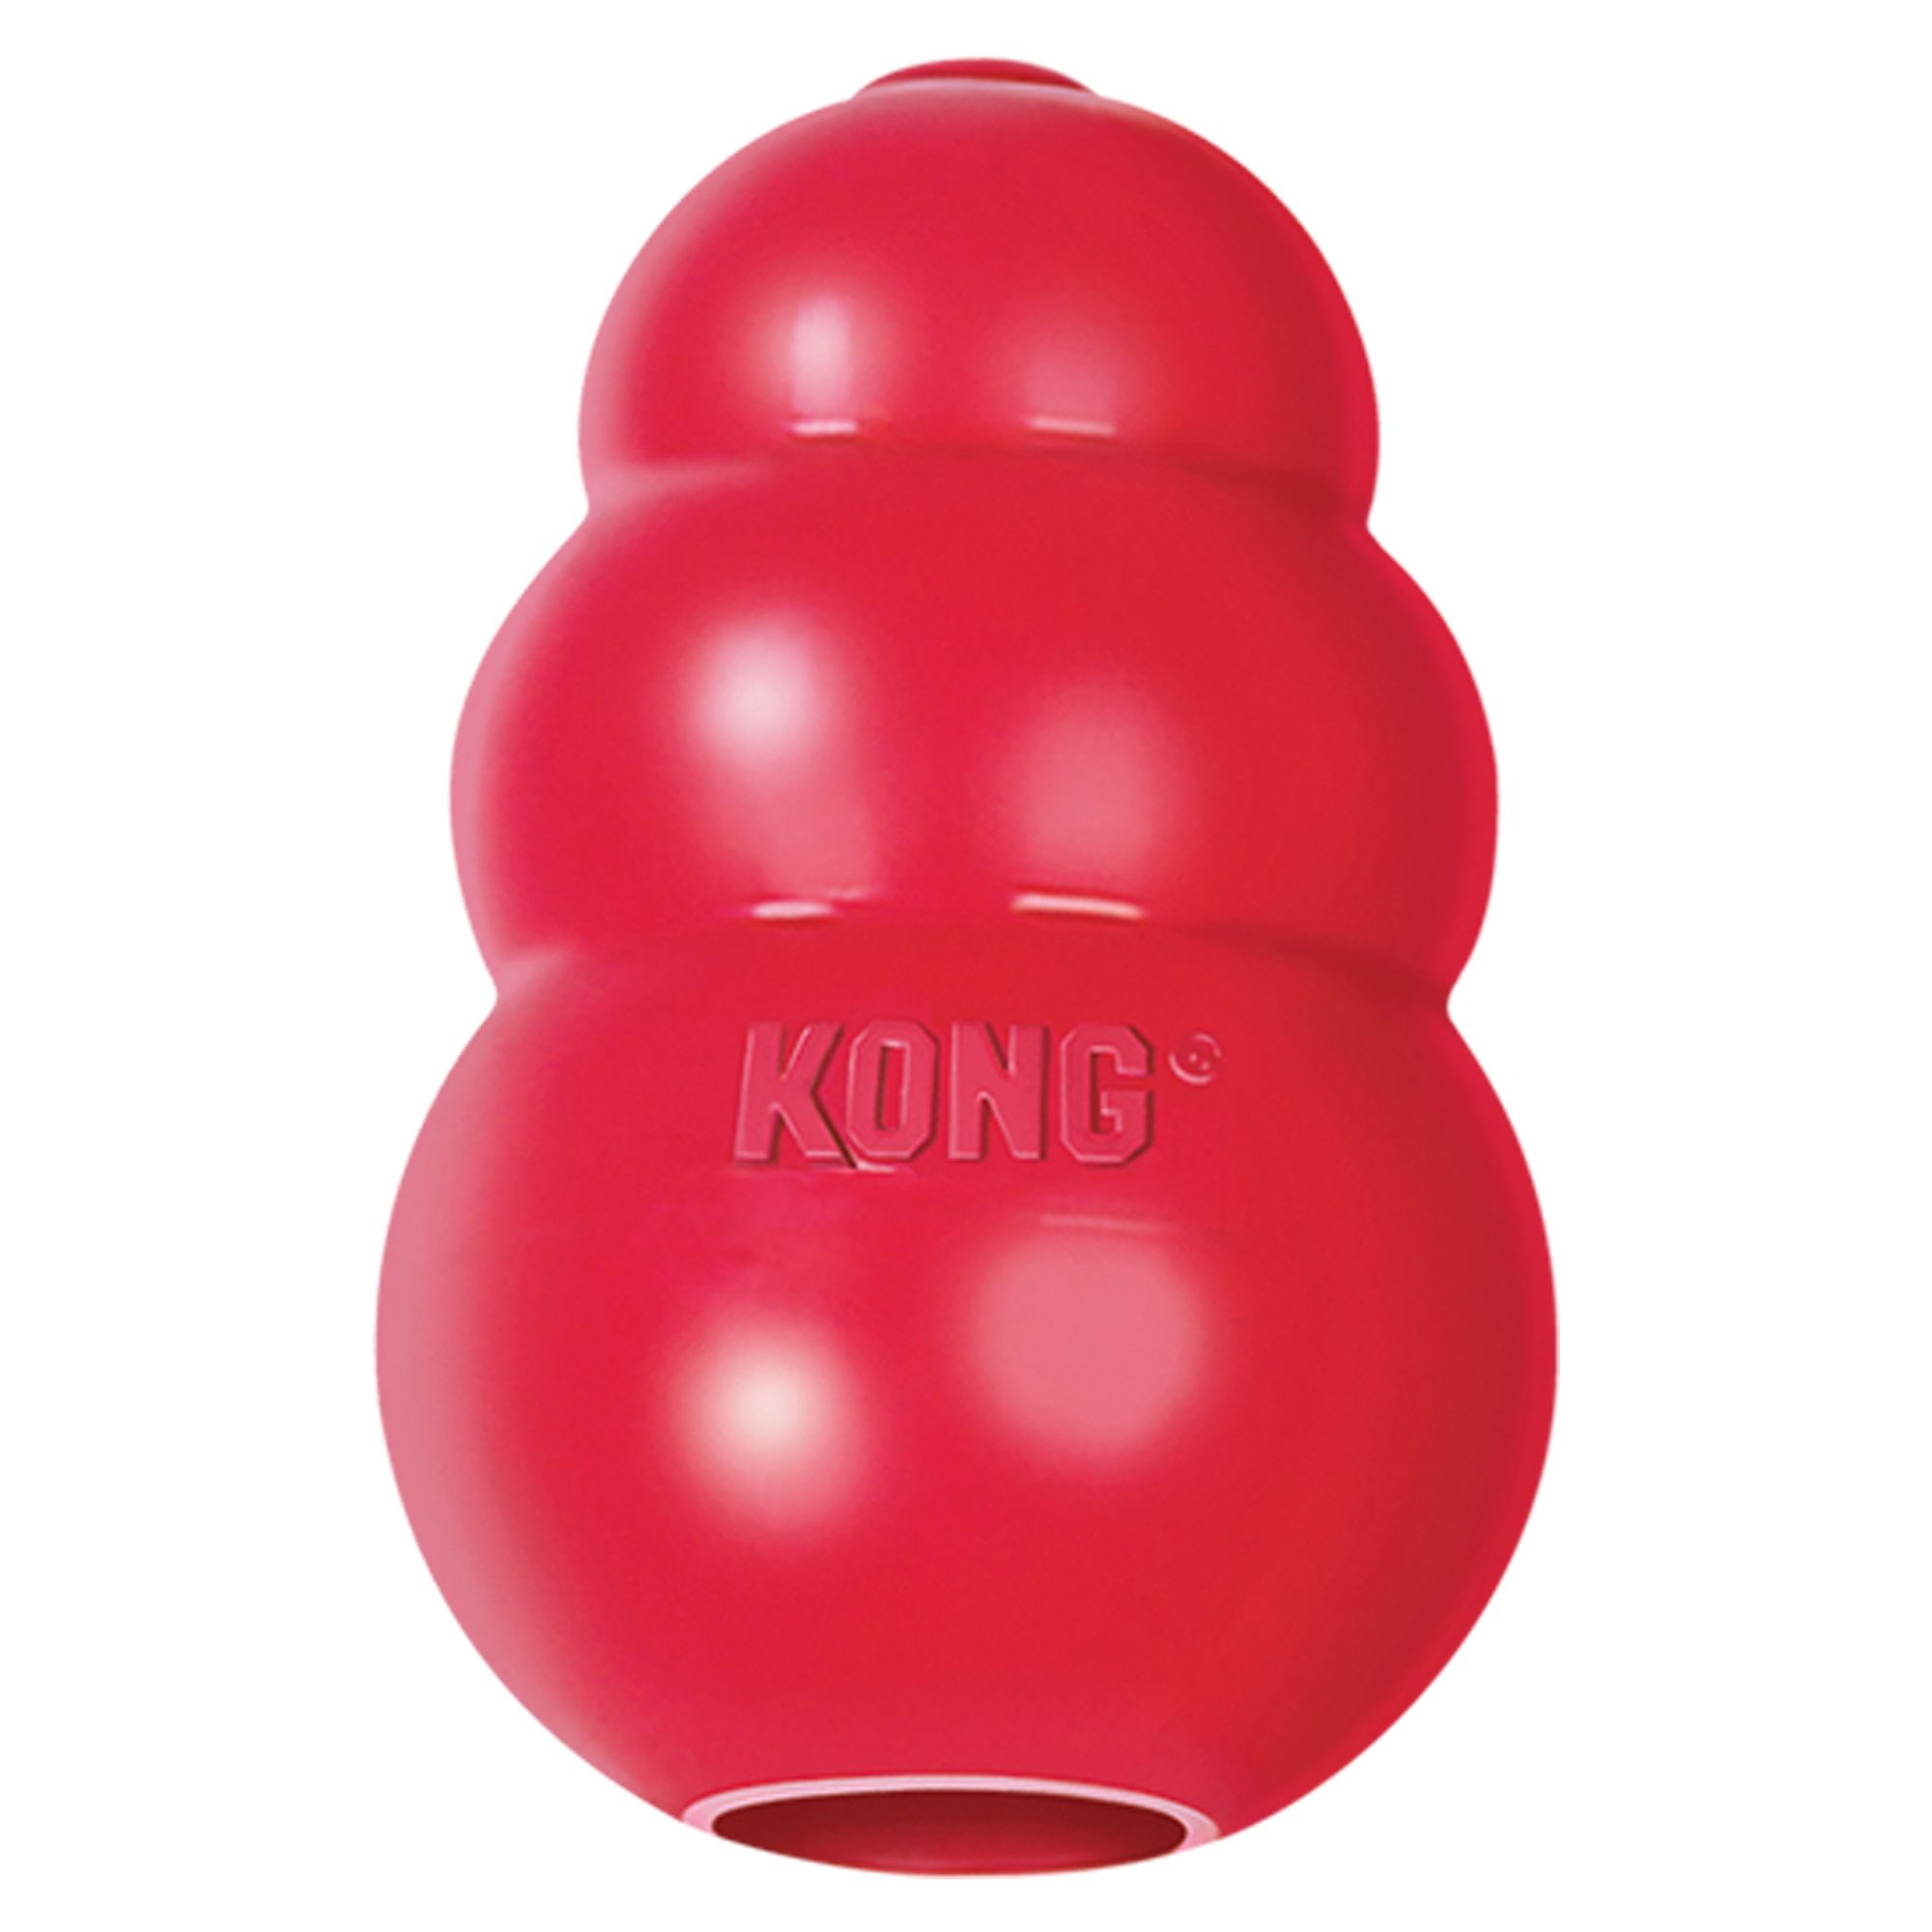 Kong Classic Dog Toy - Treat Dispensing size: Large, Red 1811625